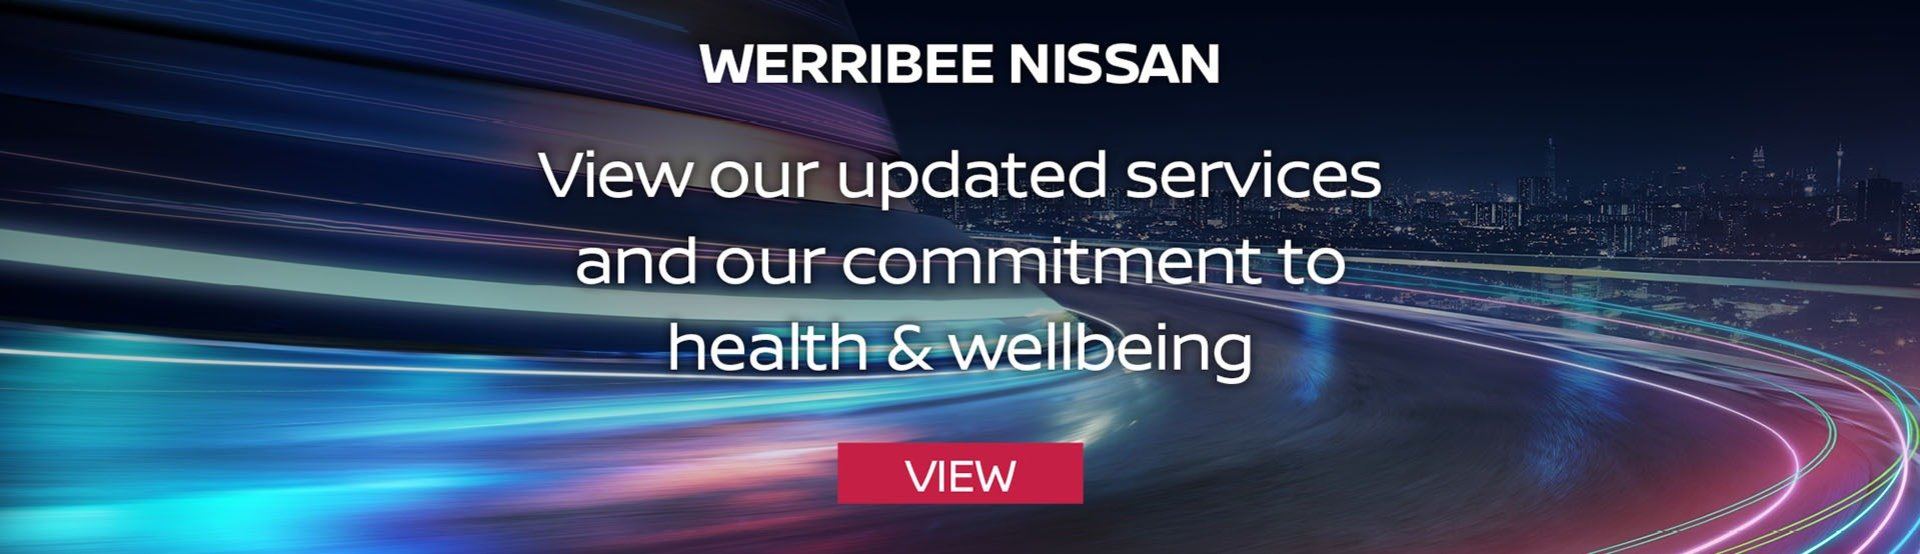 Werribee Nissan - Health & Wellbeing Update